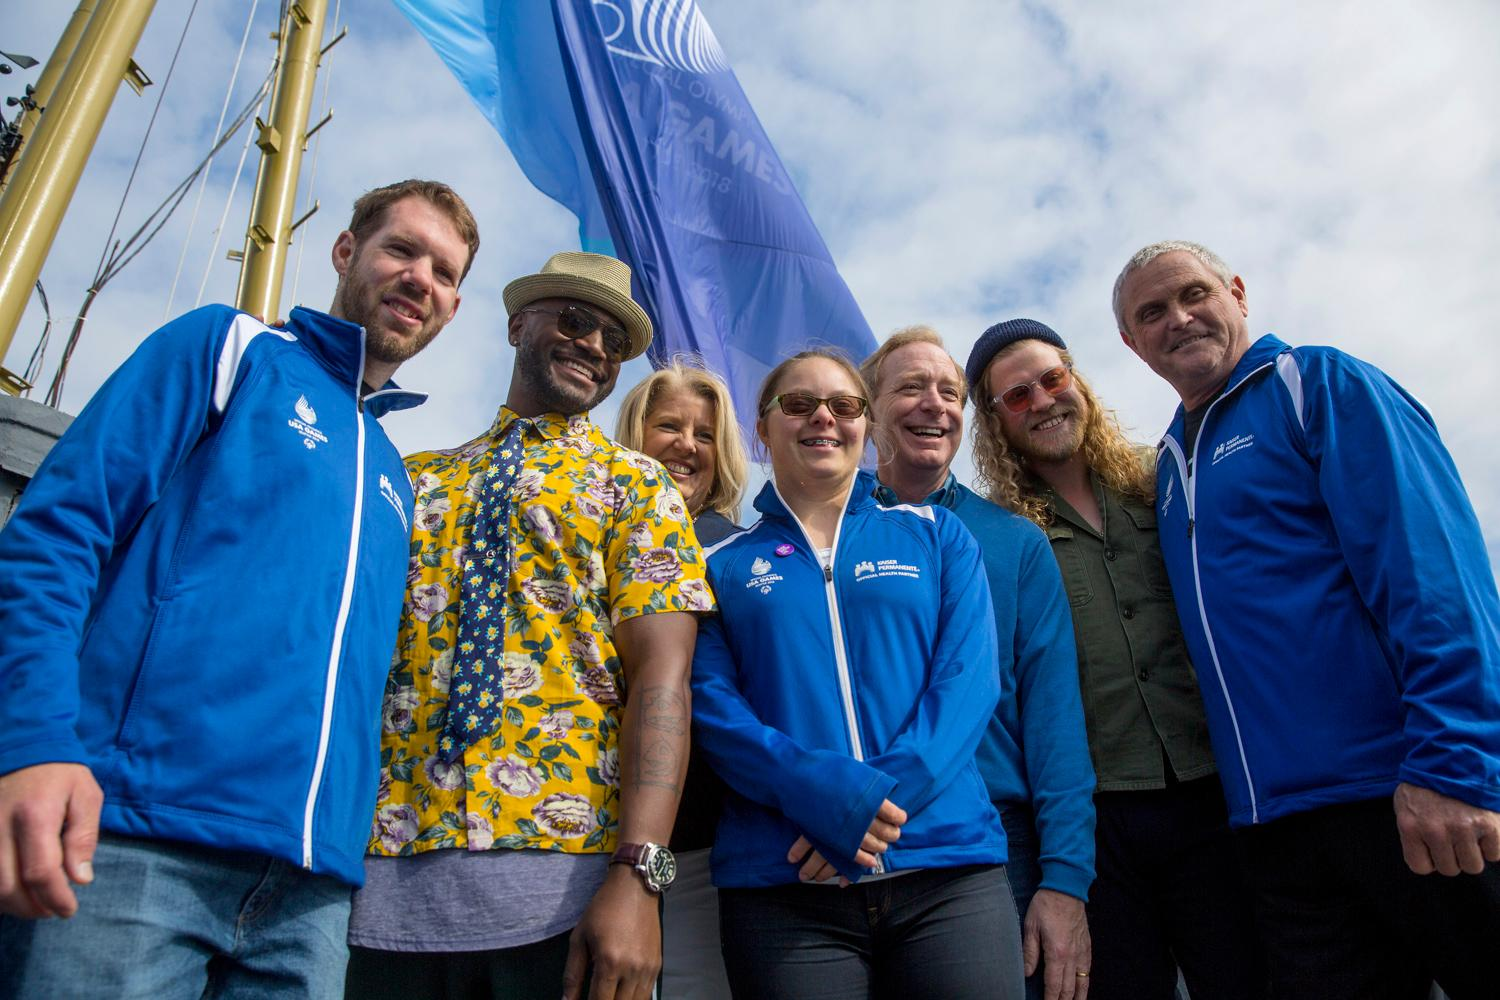 Actor-Singer Taye Diggs, and singer-songwriter Allen Stone joined Special Olympics USA athletes as they raised the Special Olympics flag on top of the Space Needle this morning.